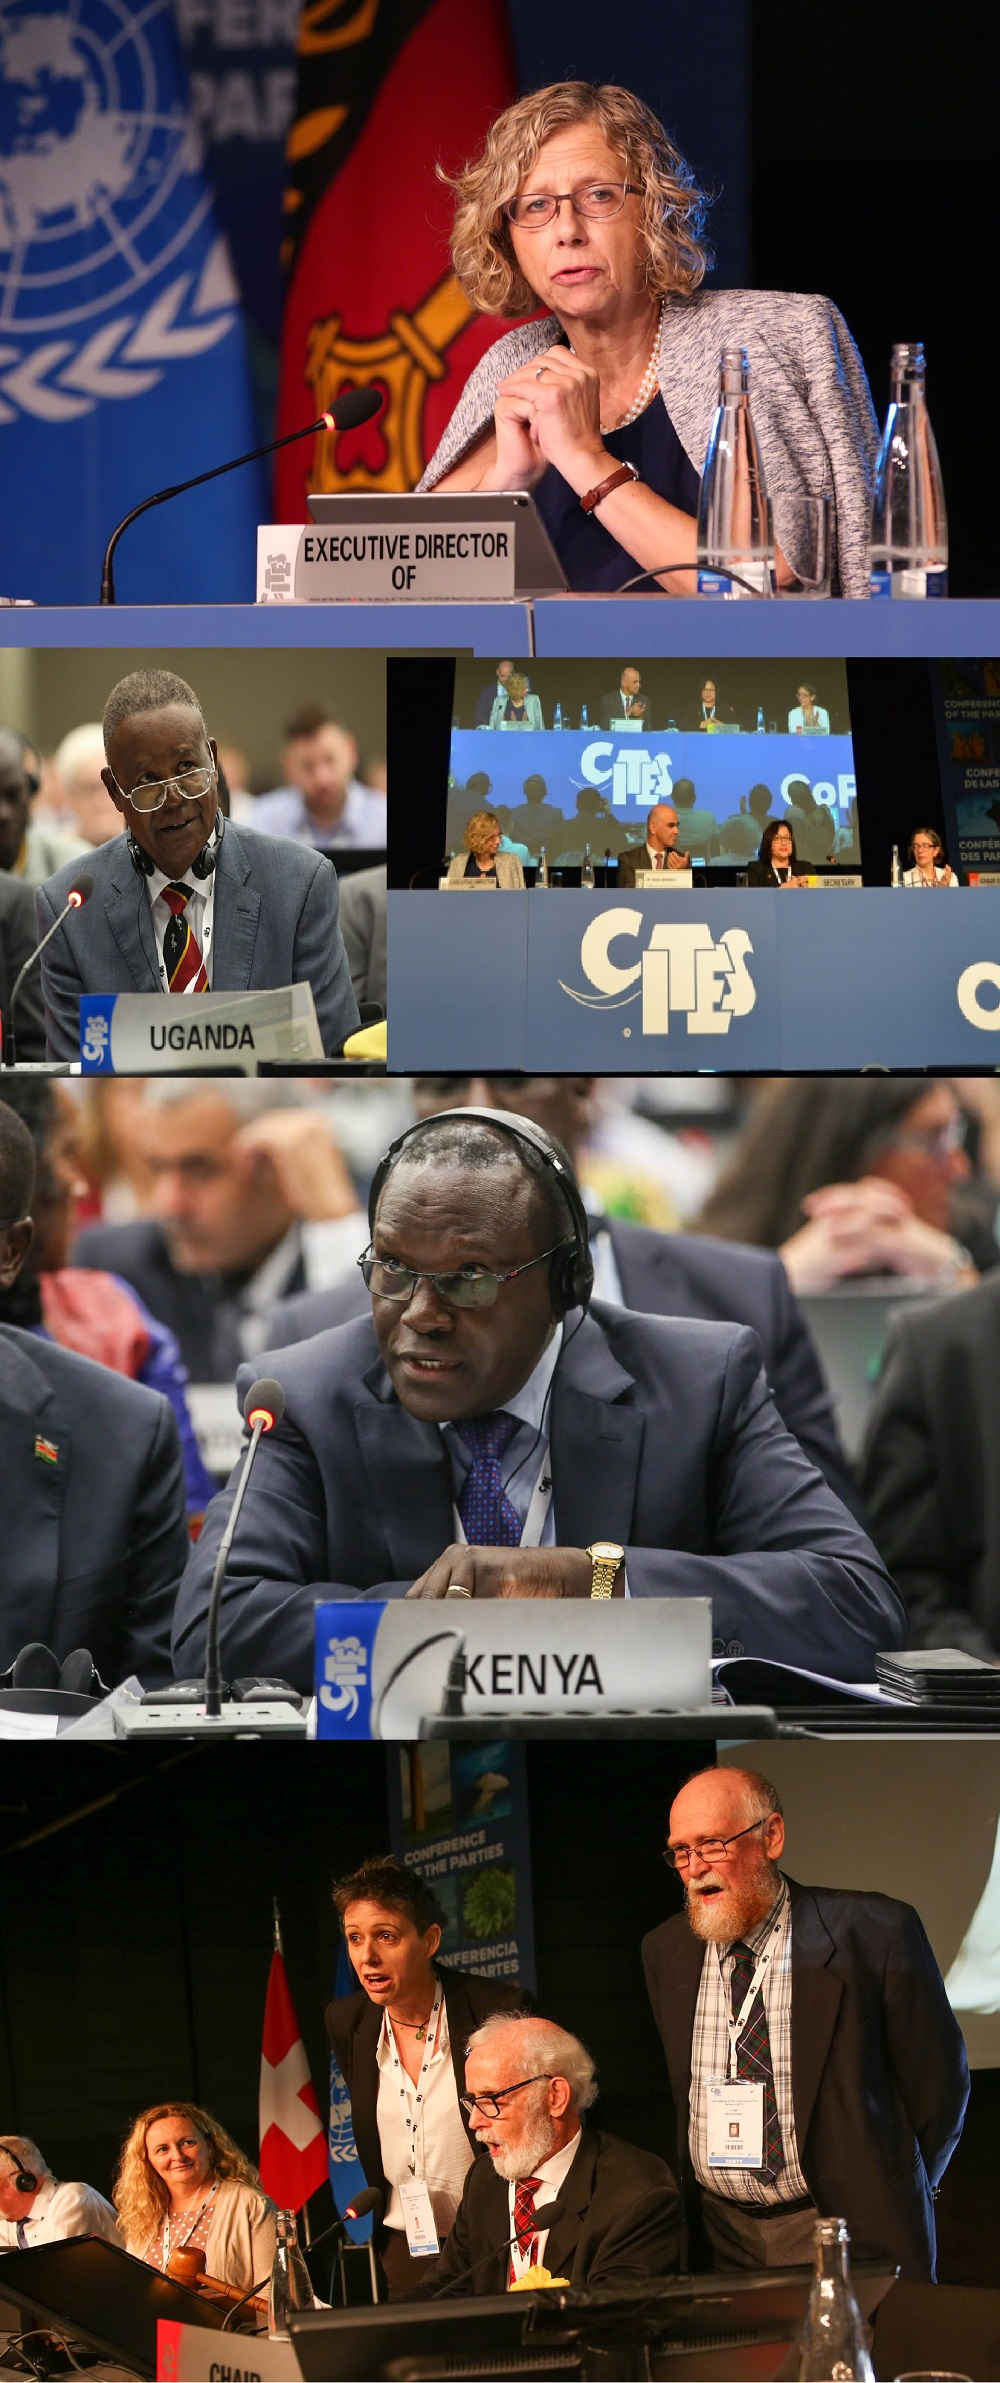 August 17-28 2019 CITES CoP18 Conference  via CITES Flickr